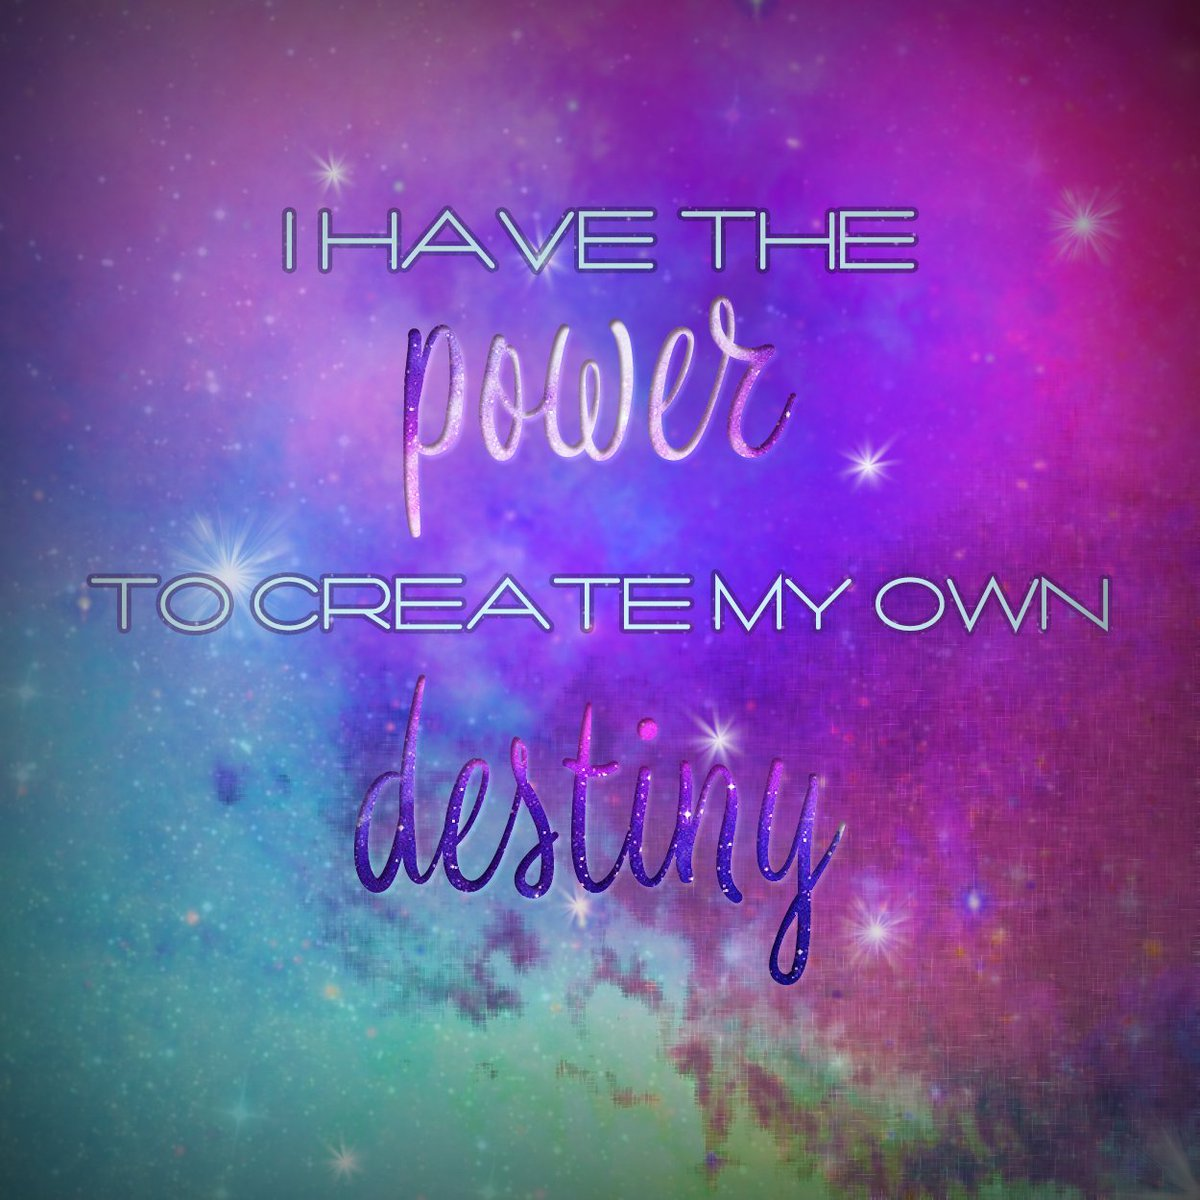 We all have the power to create our own destinies.  #affirmations #lawofattraction #manifestation #positivevibes #MysticKoneko<br>http://pic.twitter.com/loIVQsfEbj